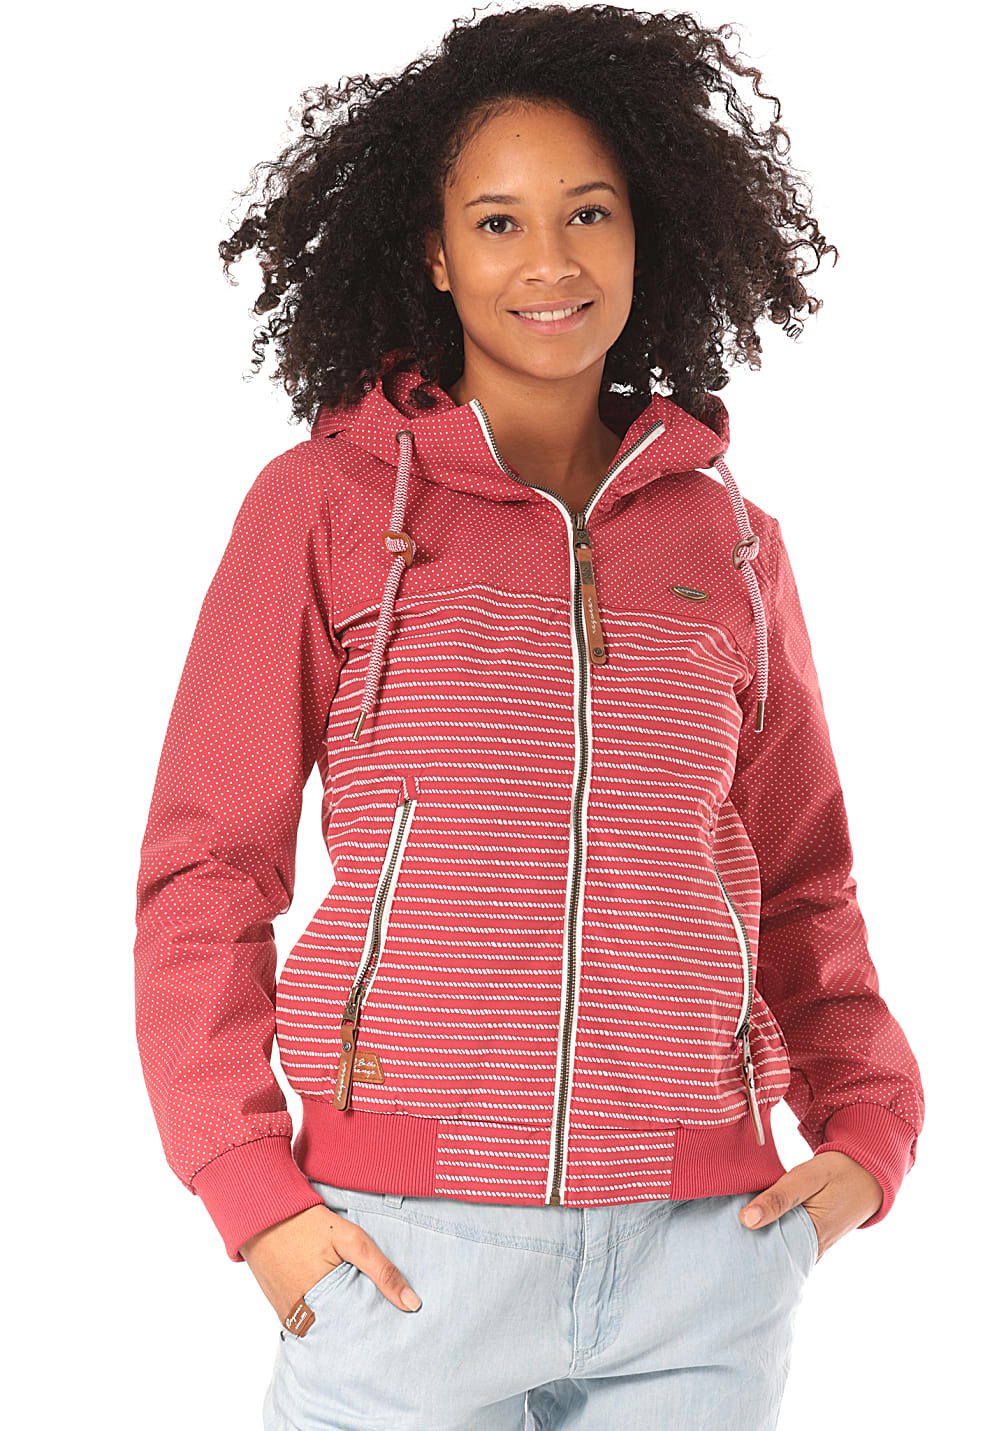 Jacken - ragwear Nuggie Marina Jacke für Damen Rot  - Onlineshop Planet Sports